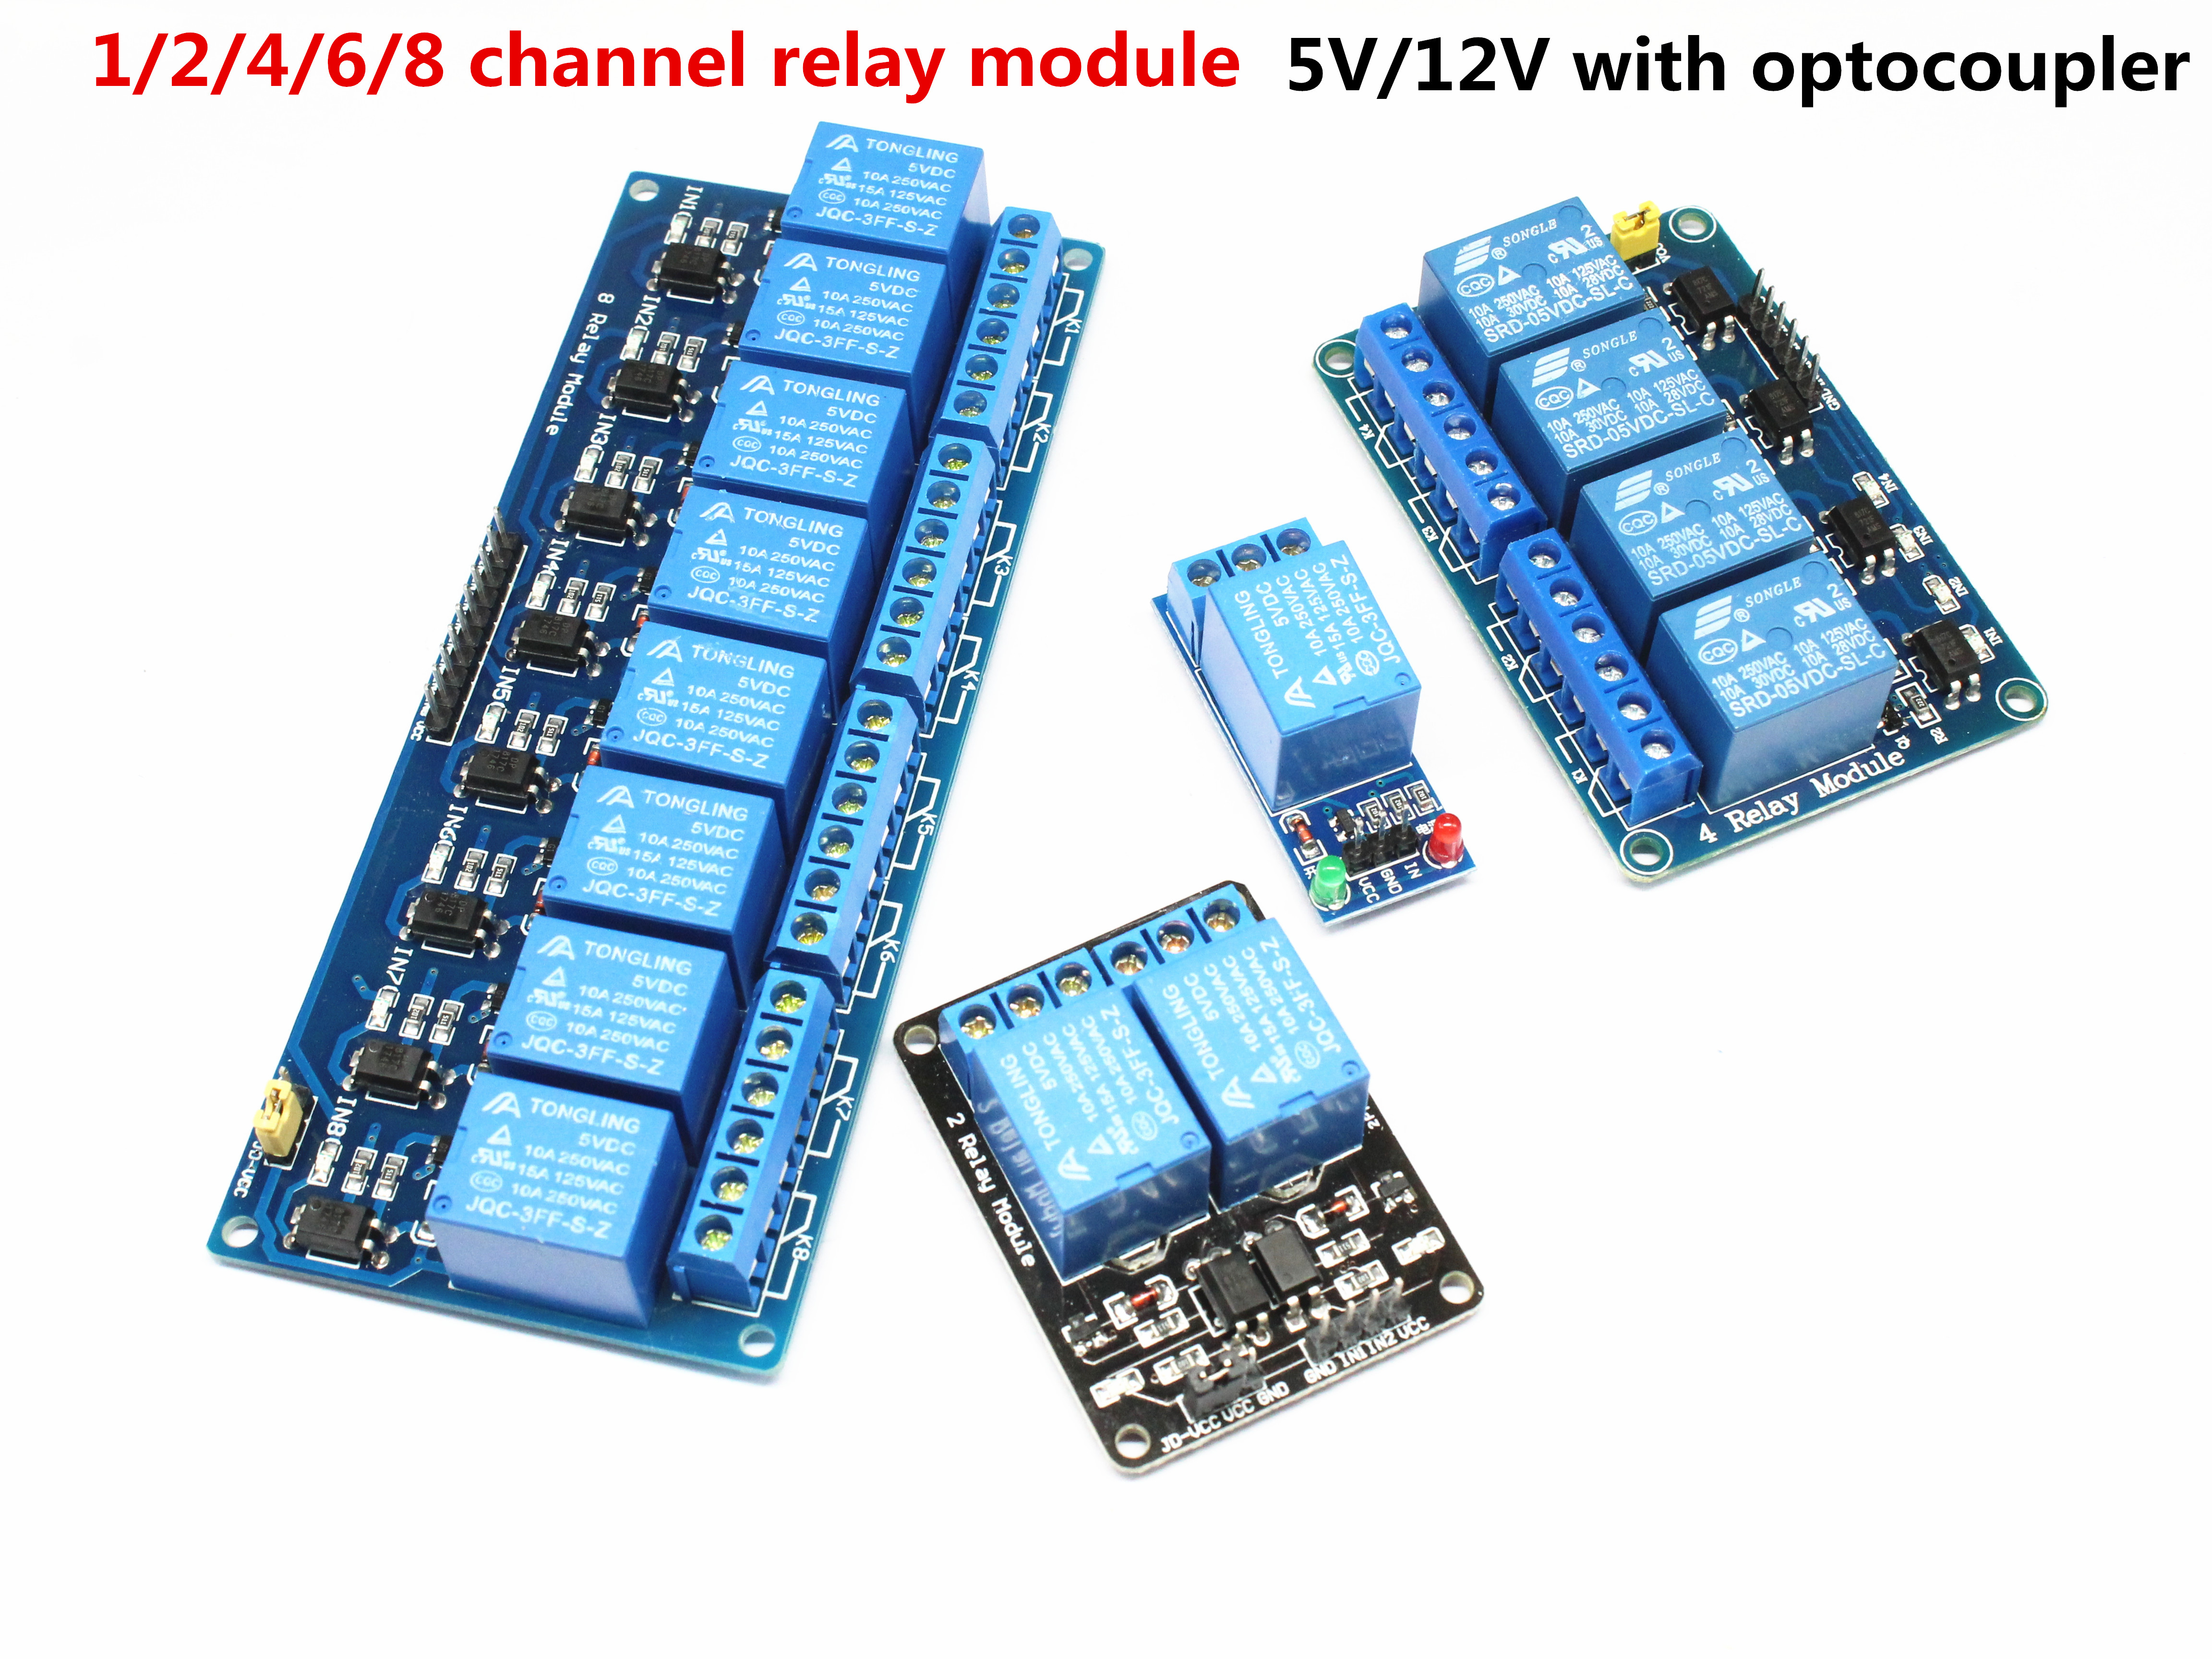 1pcs 5v 12v 1 2 4 6 8 Channel Relay Module With Optocoupler. Relay Output 1 2 4 6 8 Way Relay Module For Arduino In Stock(China)